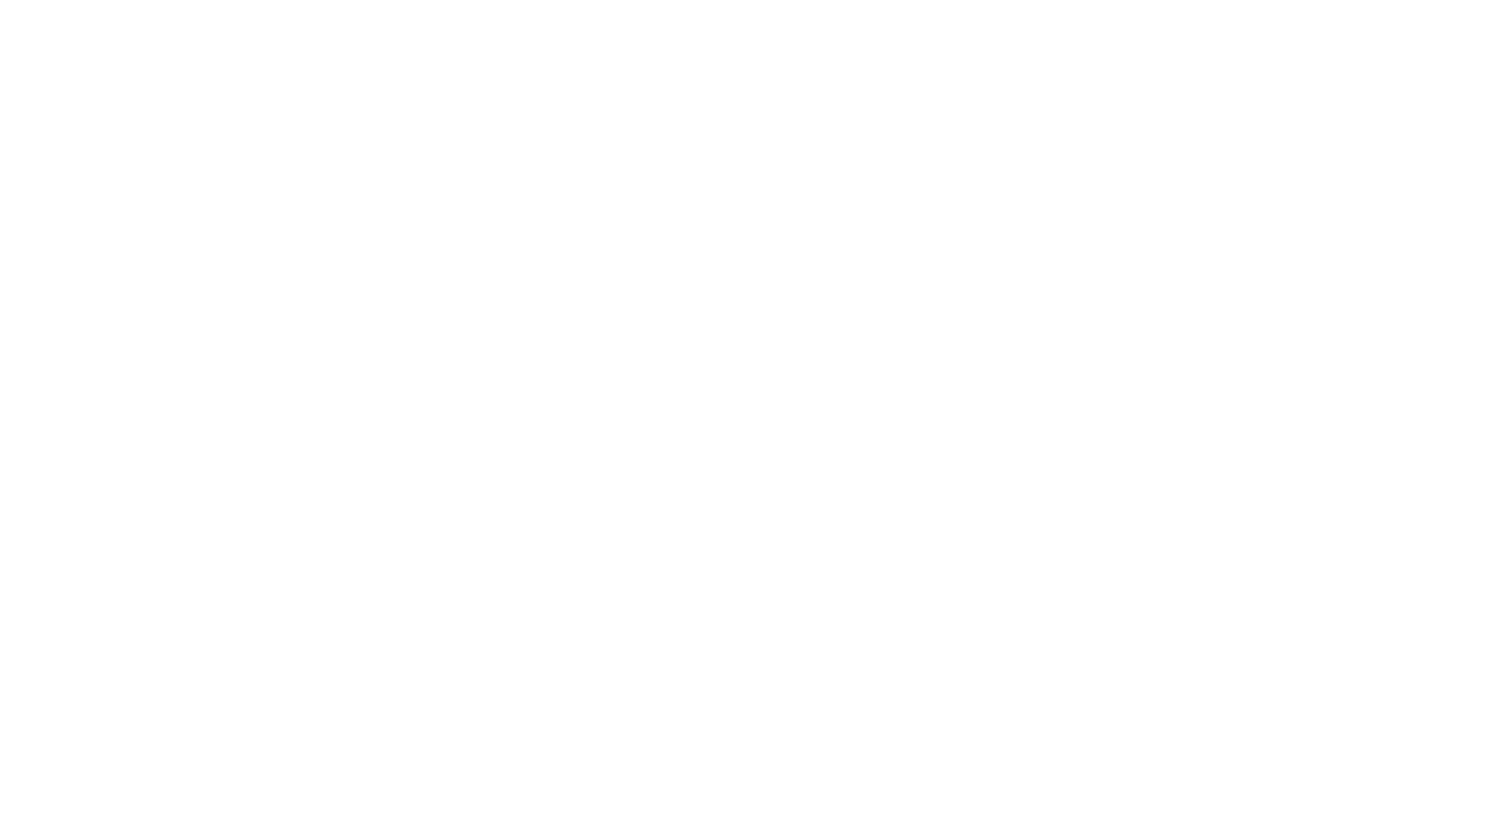 Cynthia Perry Salon